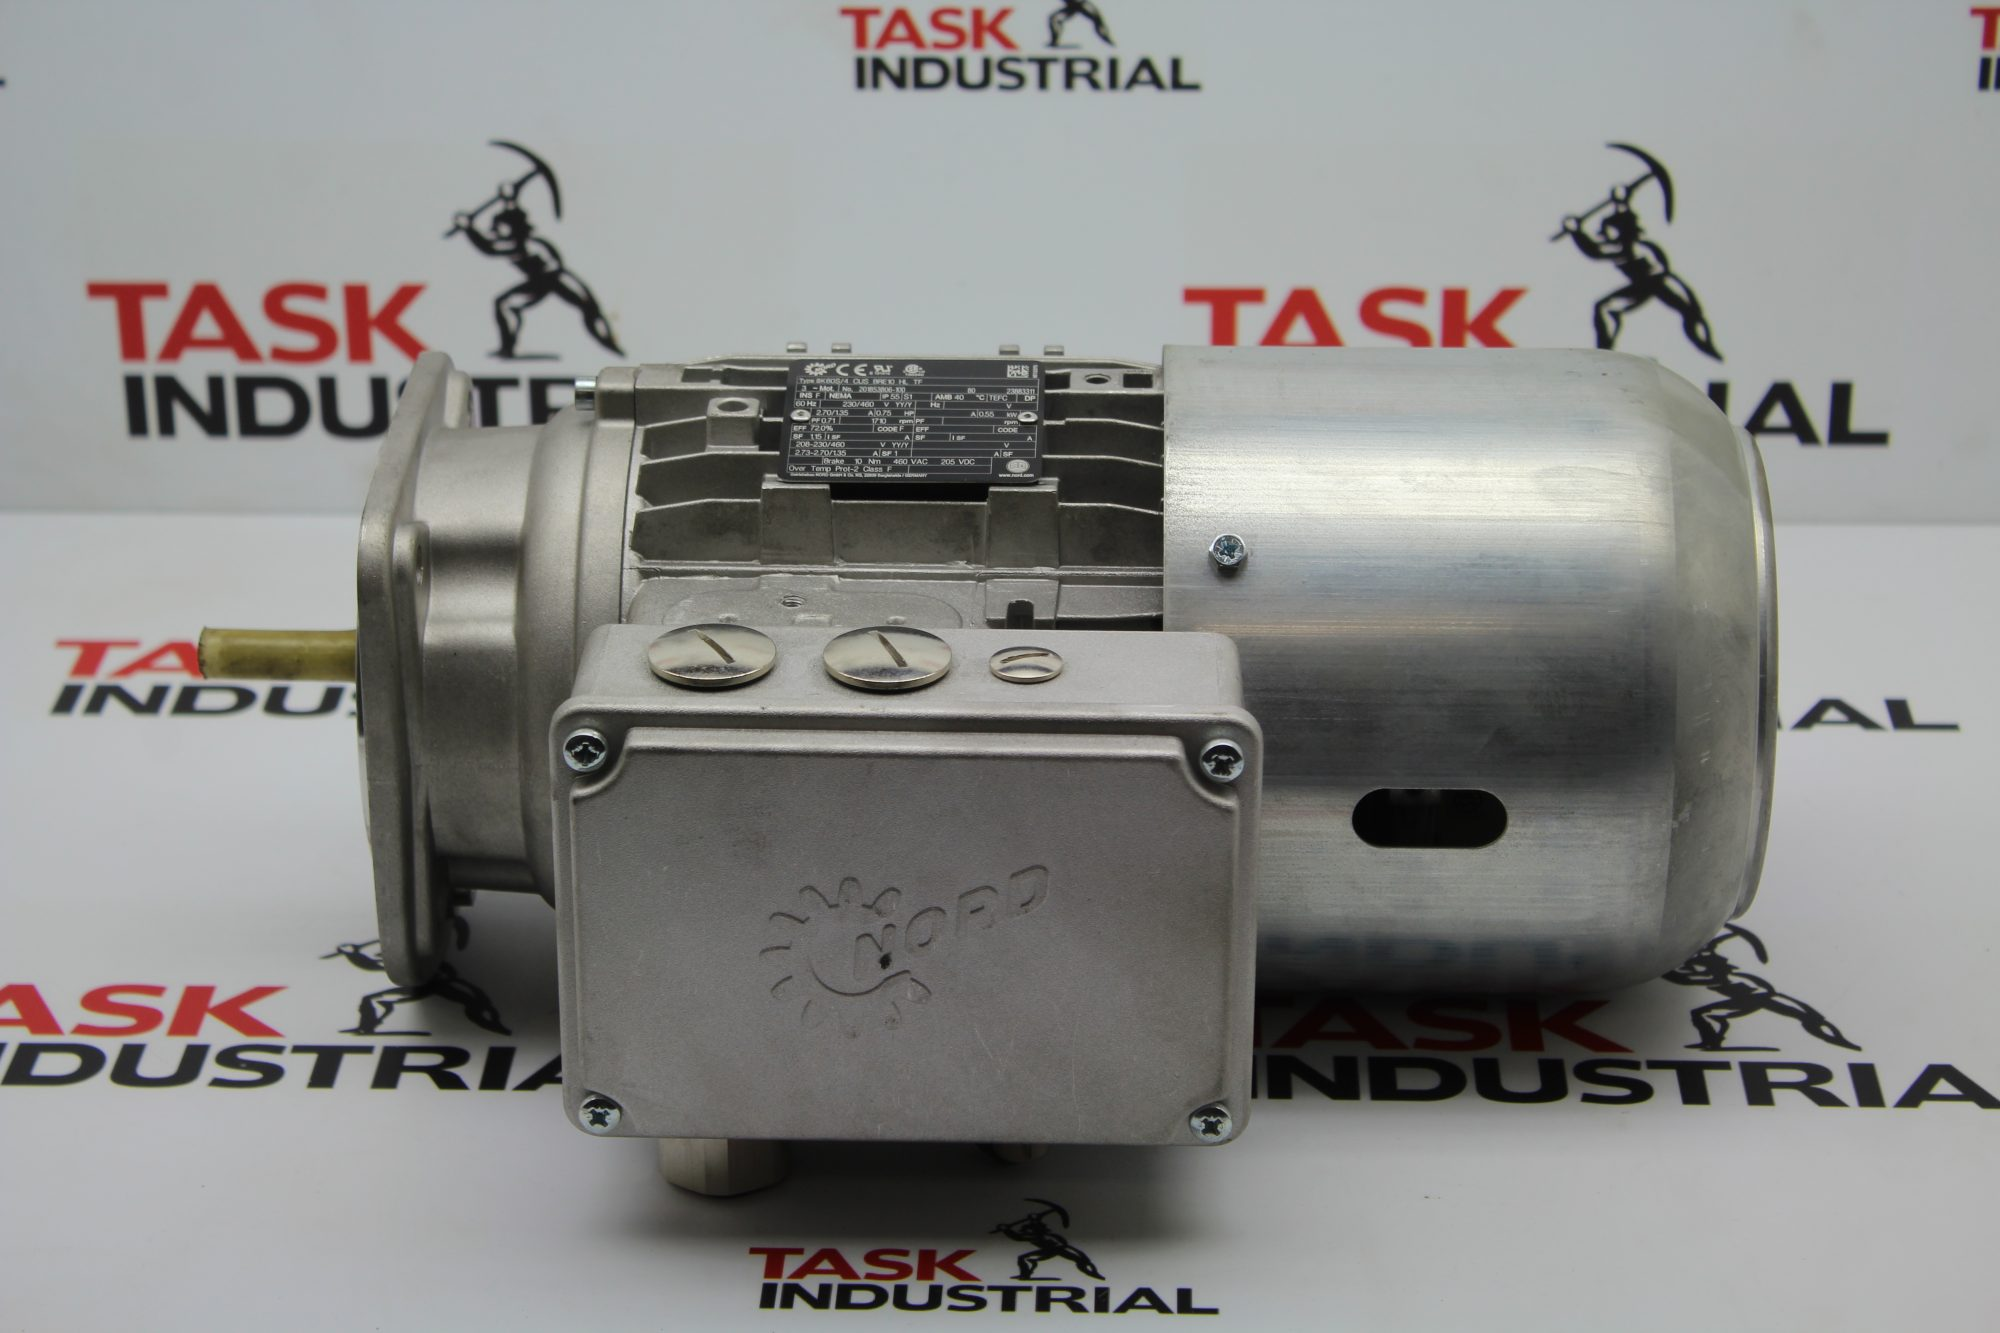 NORD .75 HP, 1710 RPM Type SK80S/4 CUS BRE10 HL TF Electric Motor